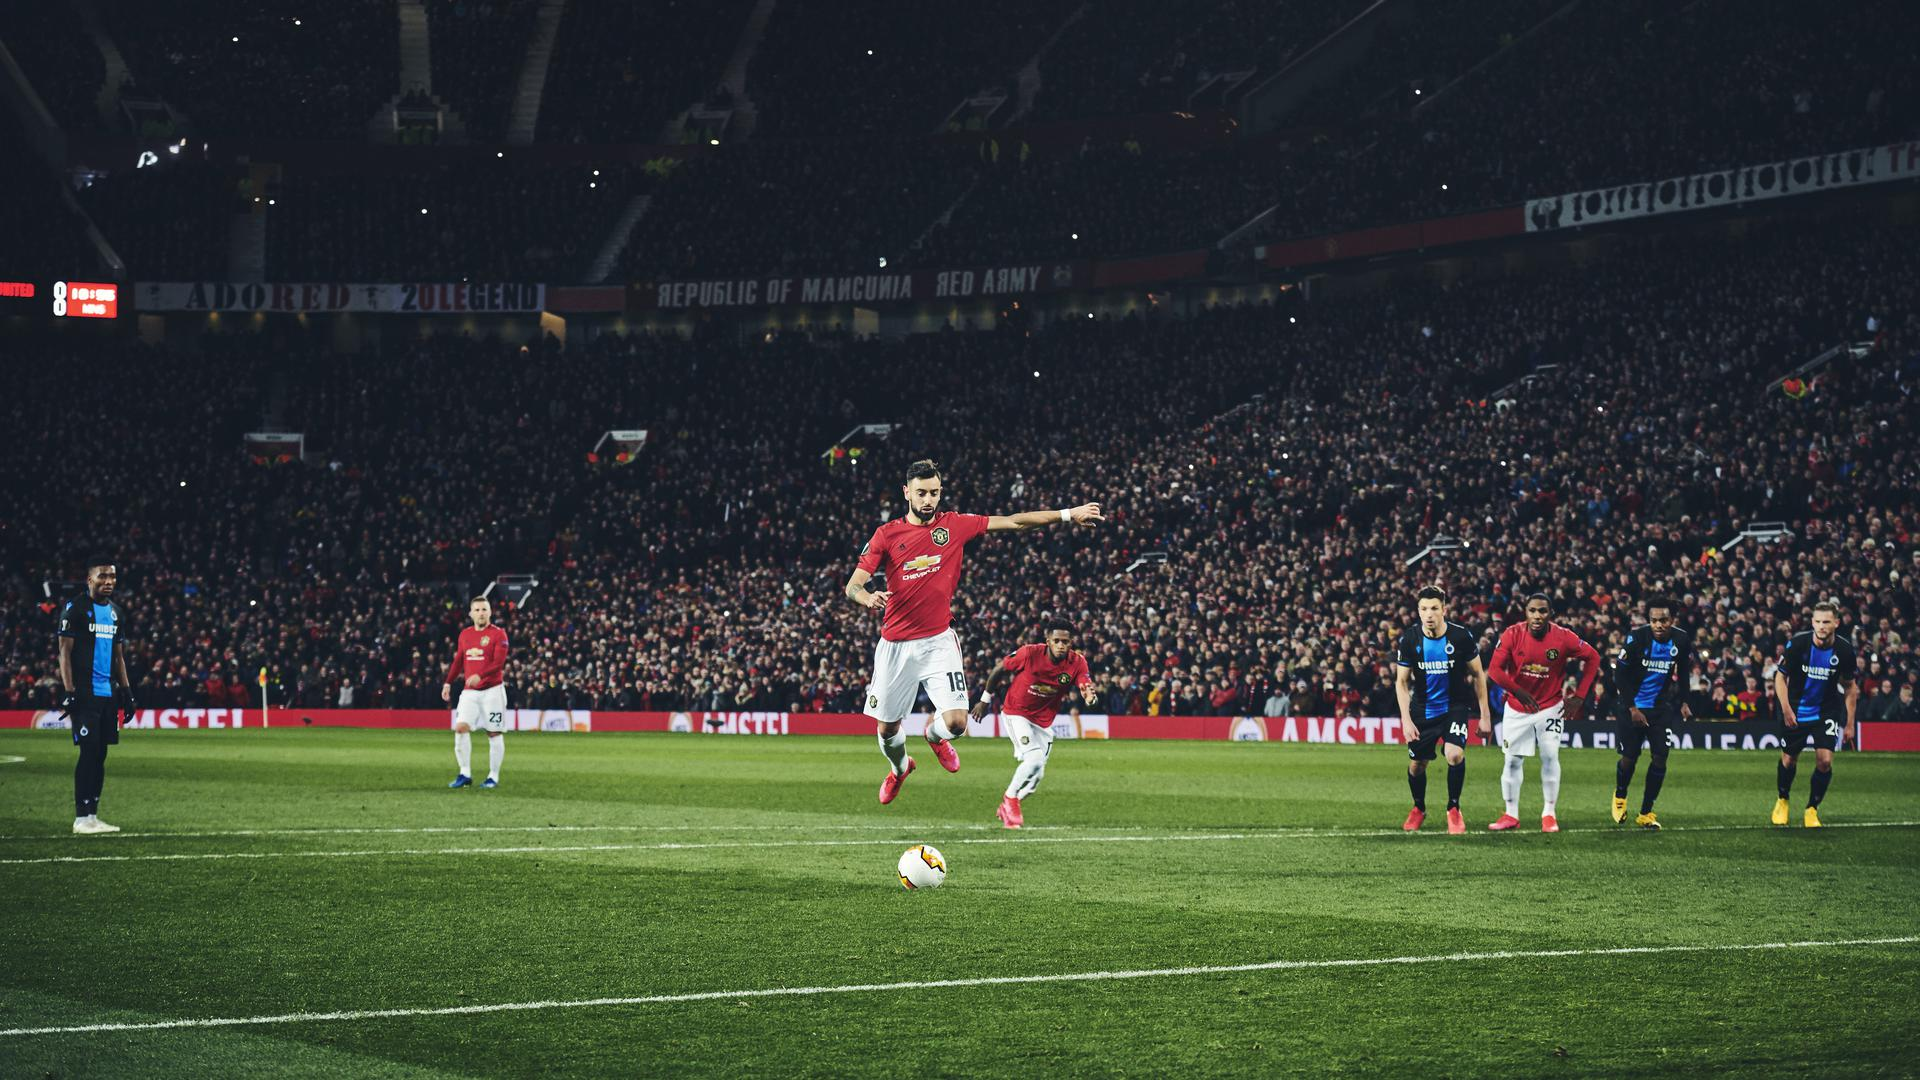 Download Manchester United Wallpaper 2020 4K